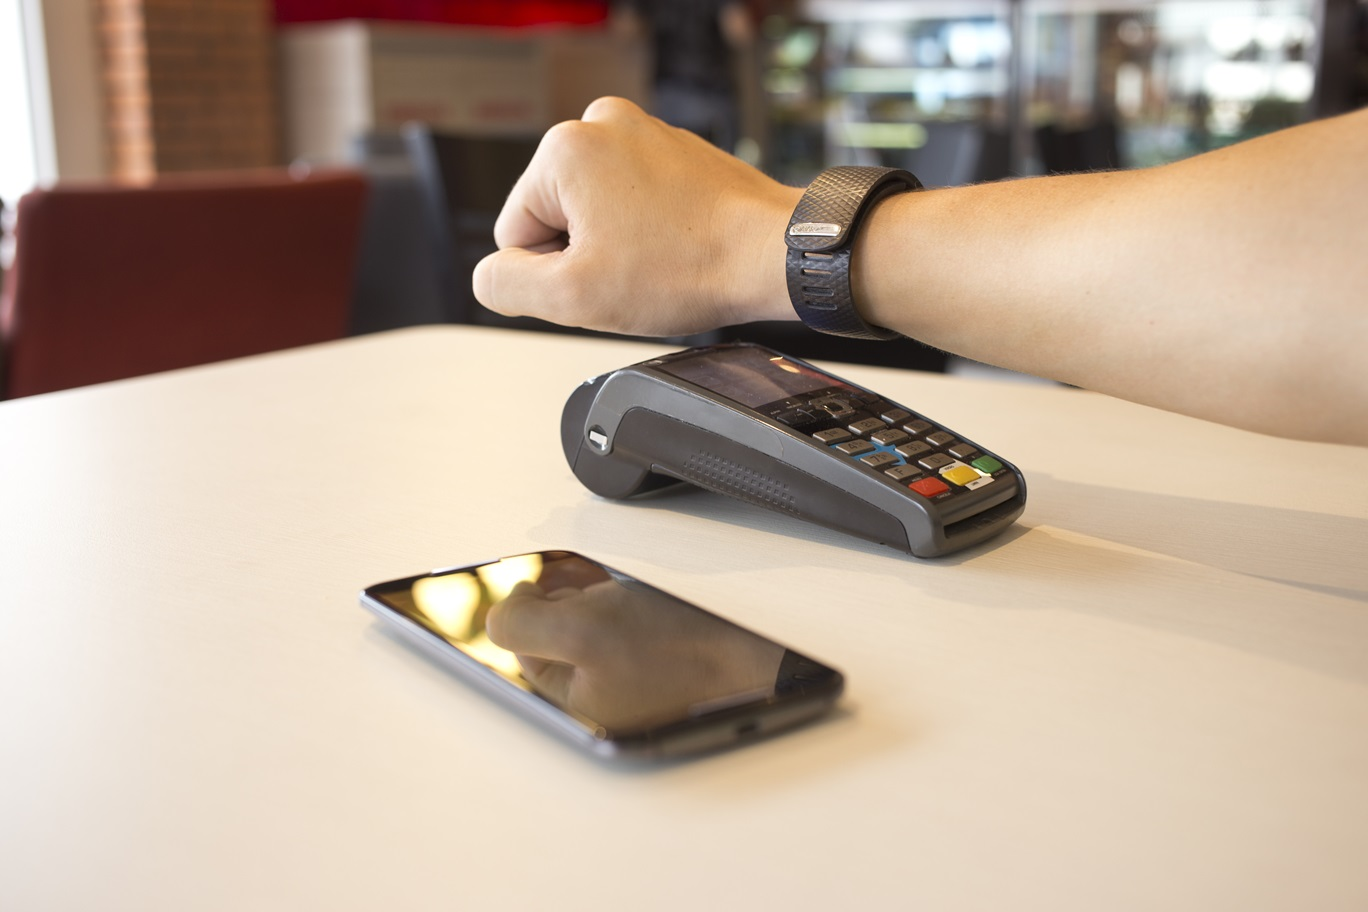 Hacker's onslaught threatening contactless payments